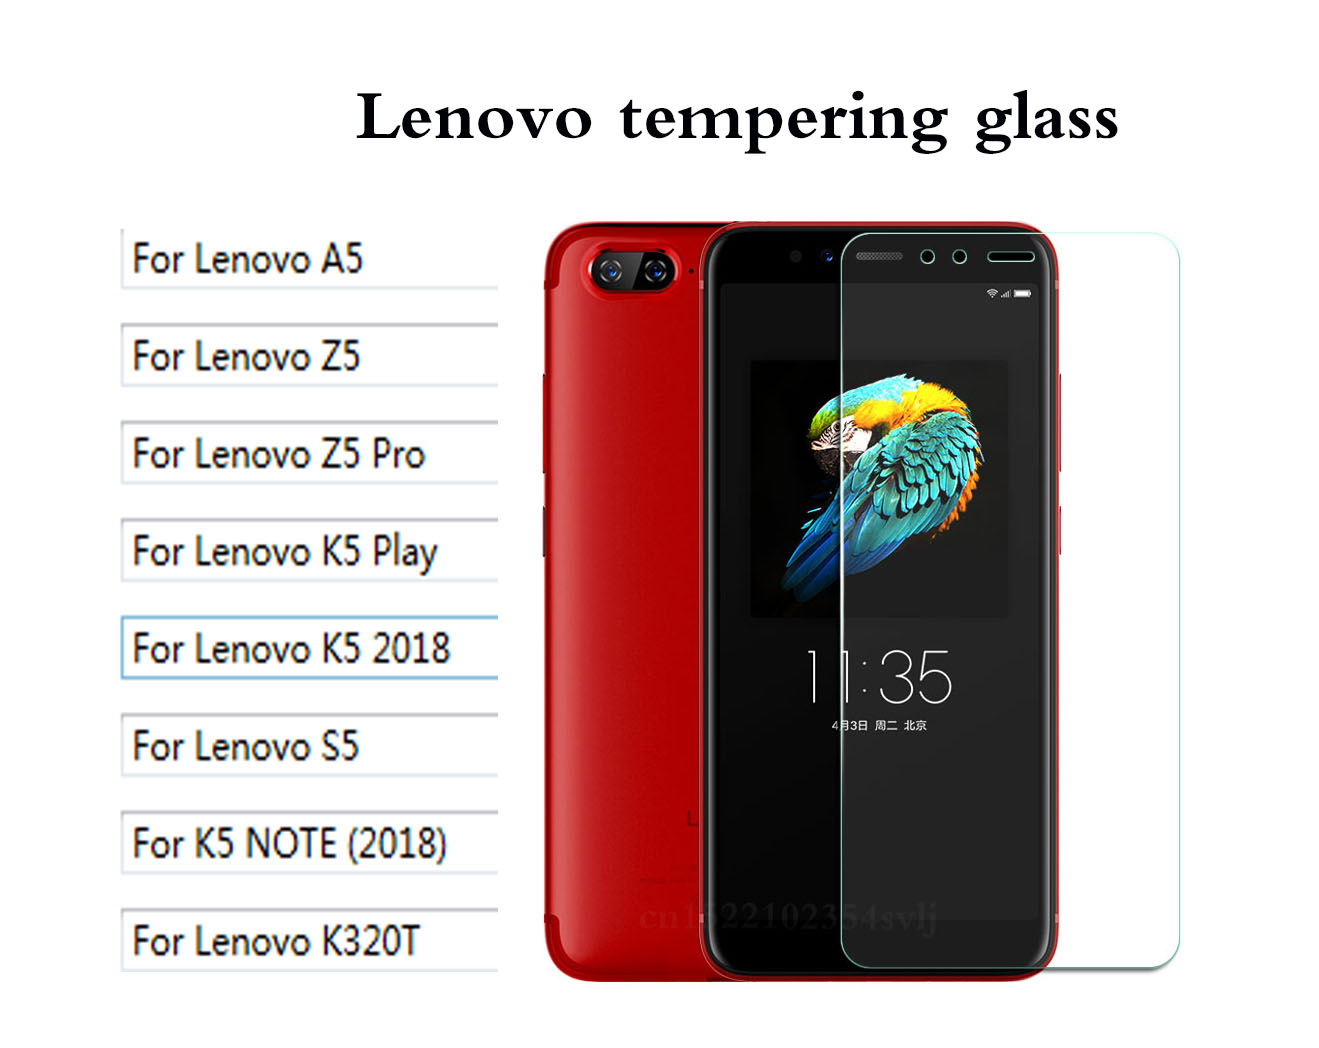 Tempered Glass For Lenovo A5 K320t S5 Z5 Pro K5 Play K5 2018 NOTE (2018) Explosion-proof Protective Film Screen Protector >